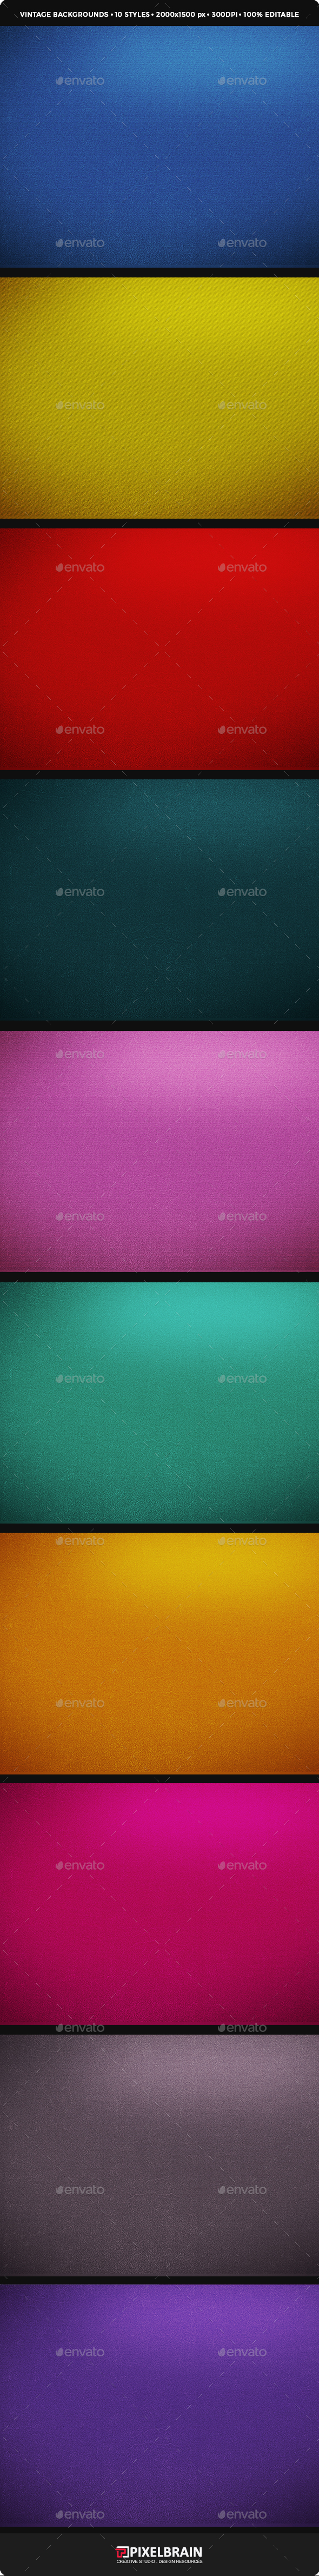 10 Style Vintage Backgrounds Vol. 1 - Backgrounds Graphics